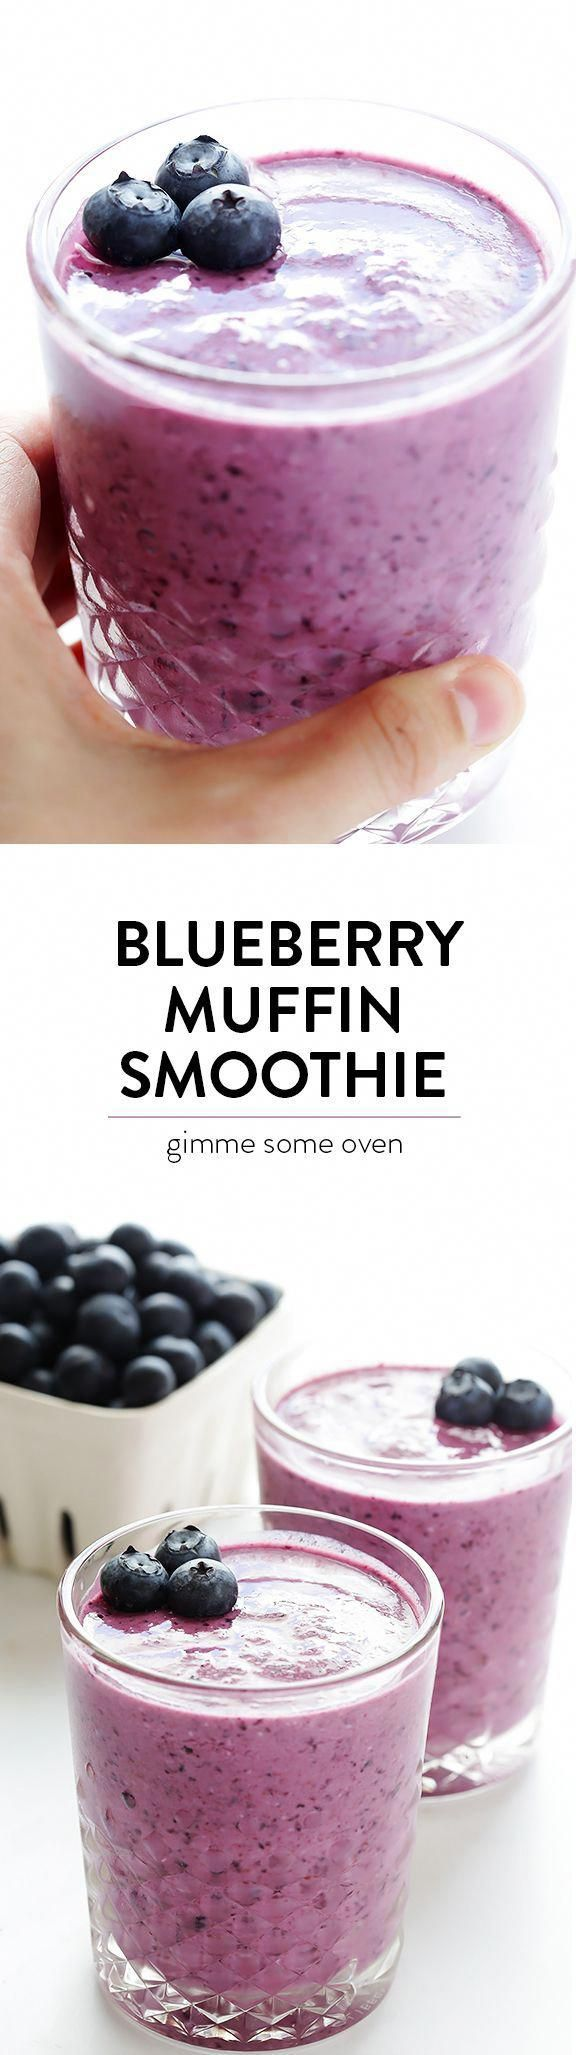 Photo of Blueberry Muffin Smoothie Recipe — made with fresh and healthy ingredients, and…